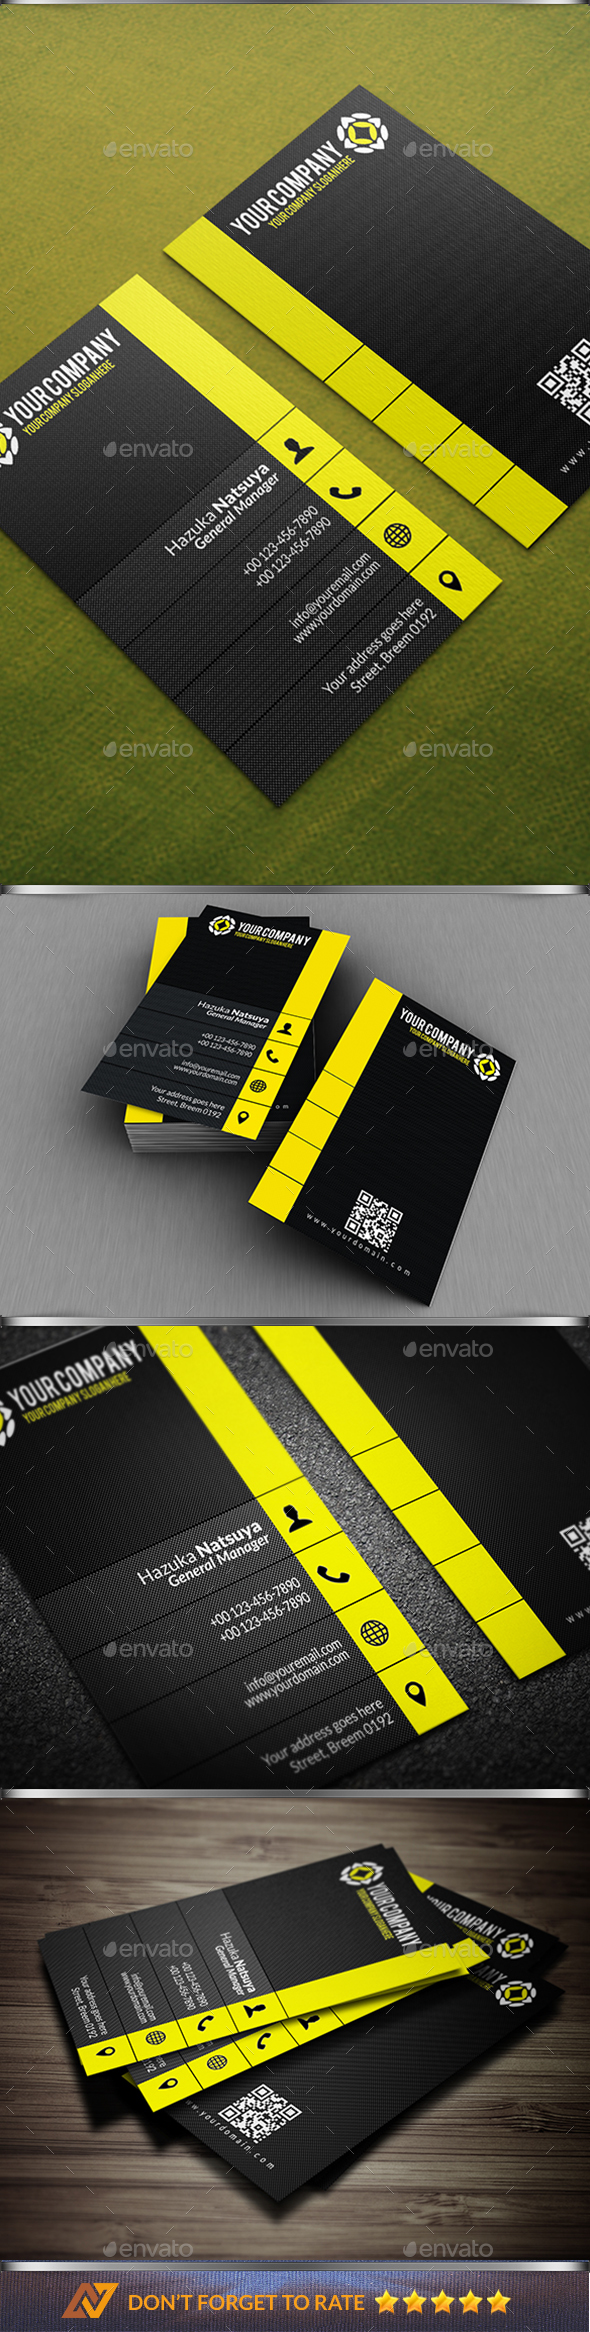 Modern Corporate Business Card Vol. 4 - Corporate Business Cards